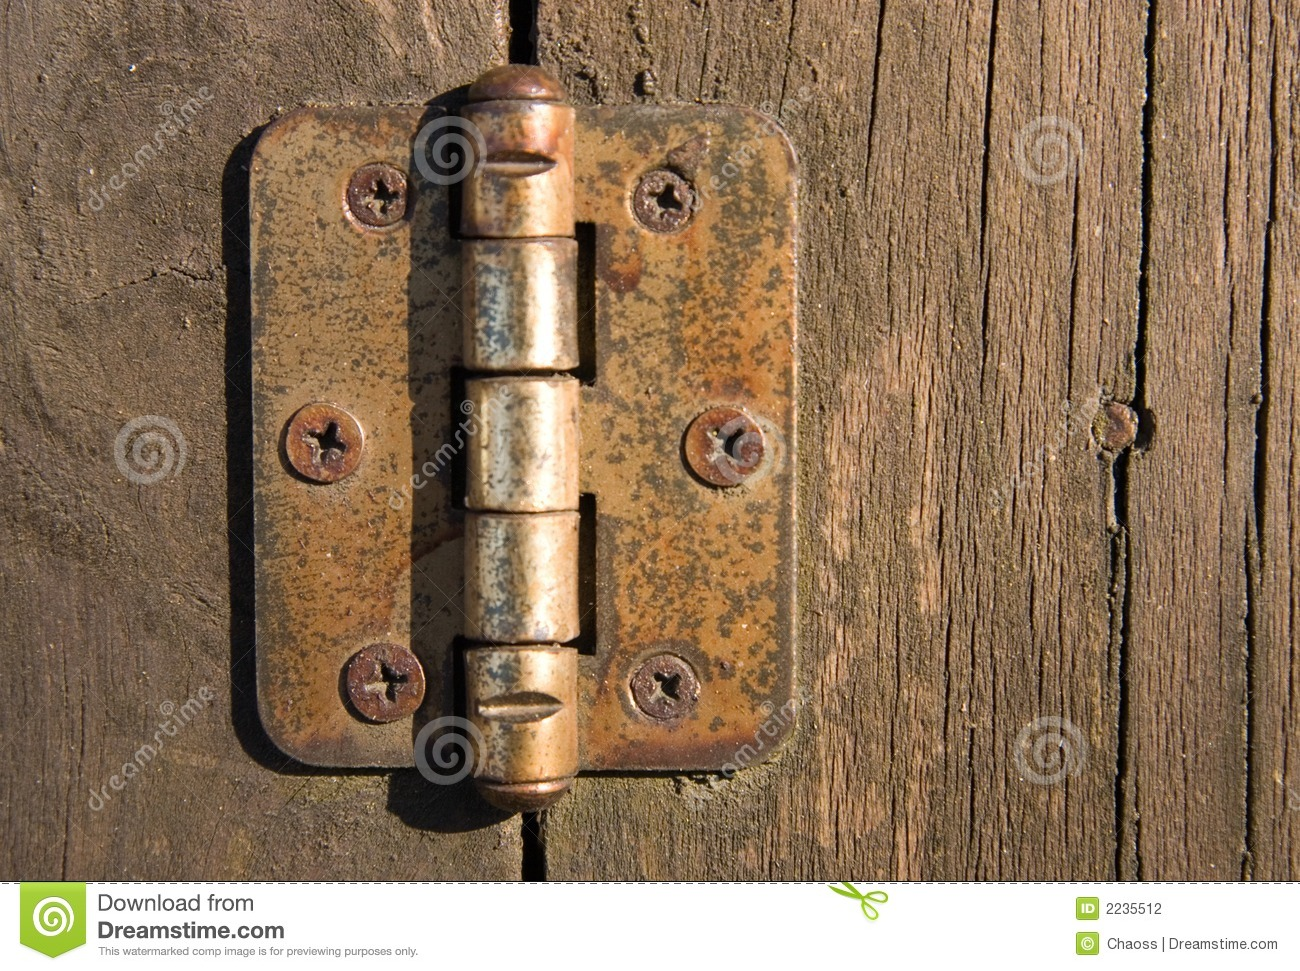 Royalty-Free Stock Photo. Download Door hinge ... & Door hinge stock photo. Image of industrial rust choppy - 2235512 pezcame.com